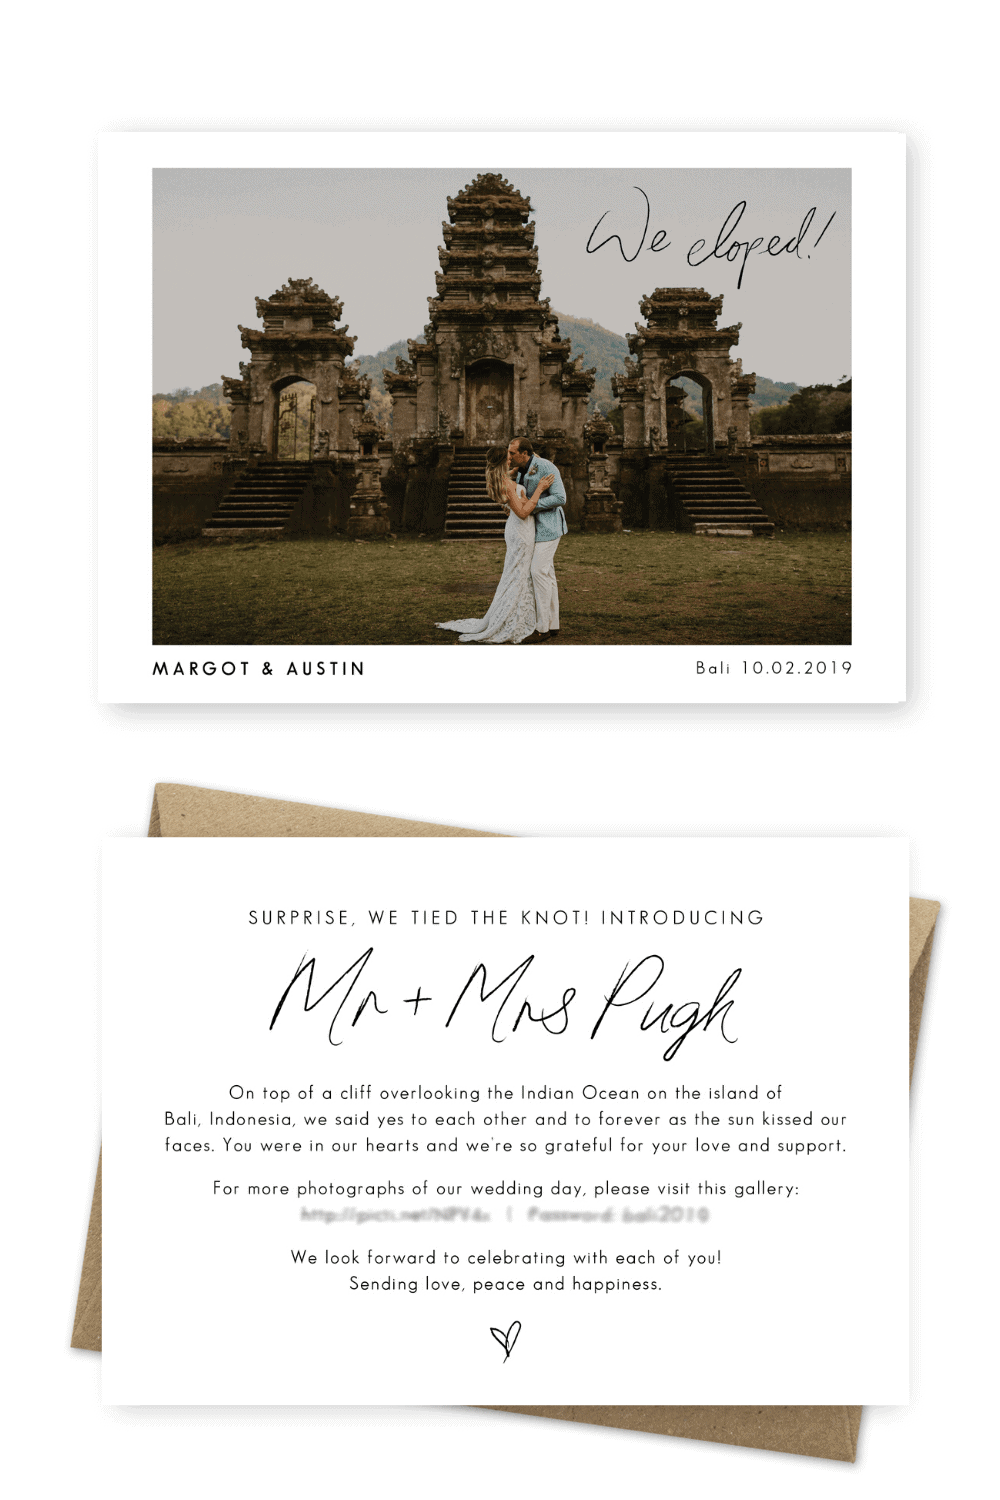 Elopement Announcement We Eloped Bali Photo Elopement Cards Anni Graham Photography For the Love of Stationery